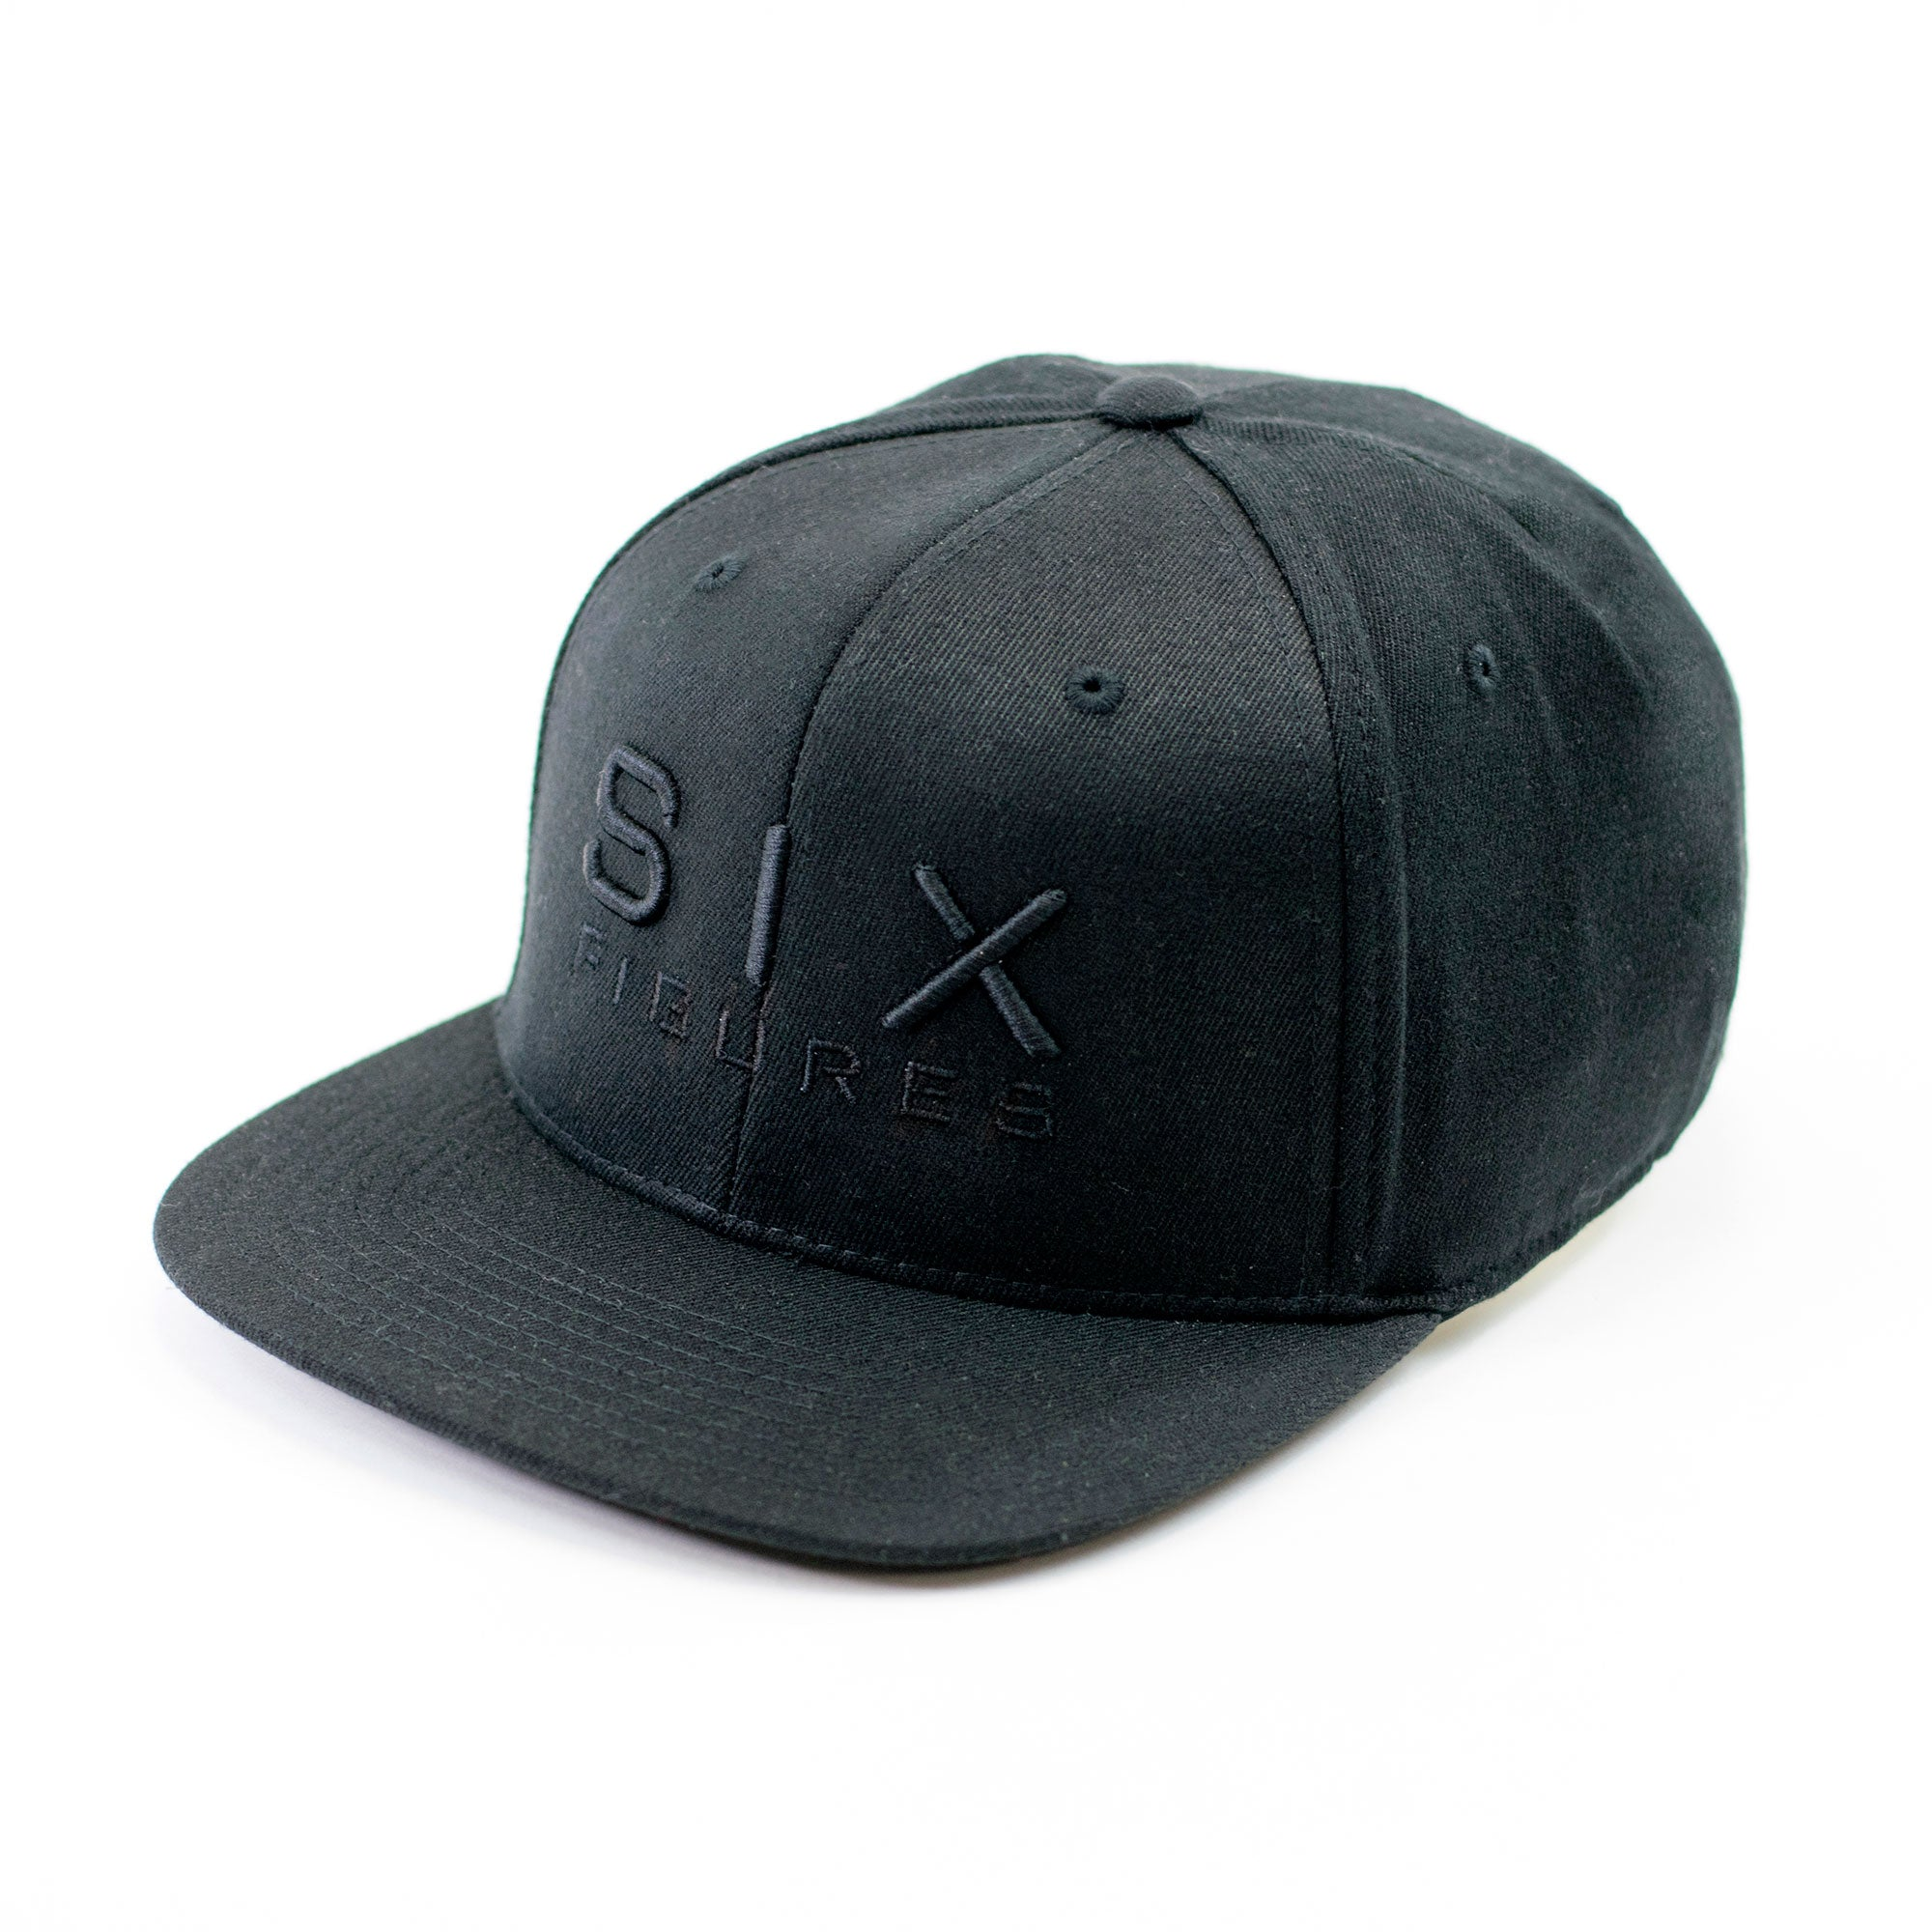 SIX FIGURES Snapback - Black - Six Figures Official